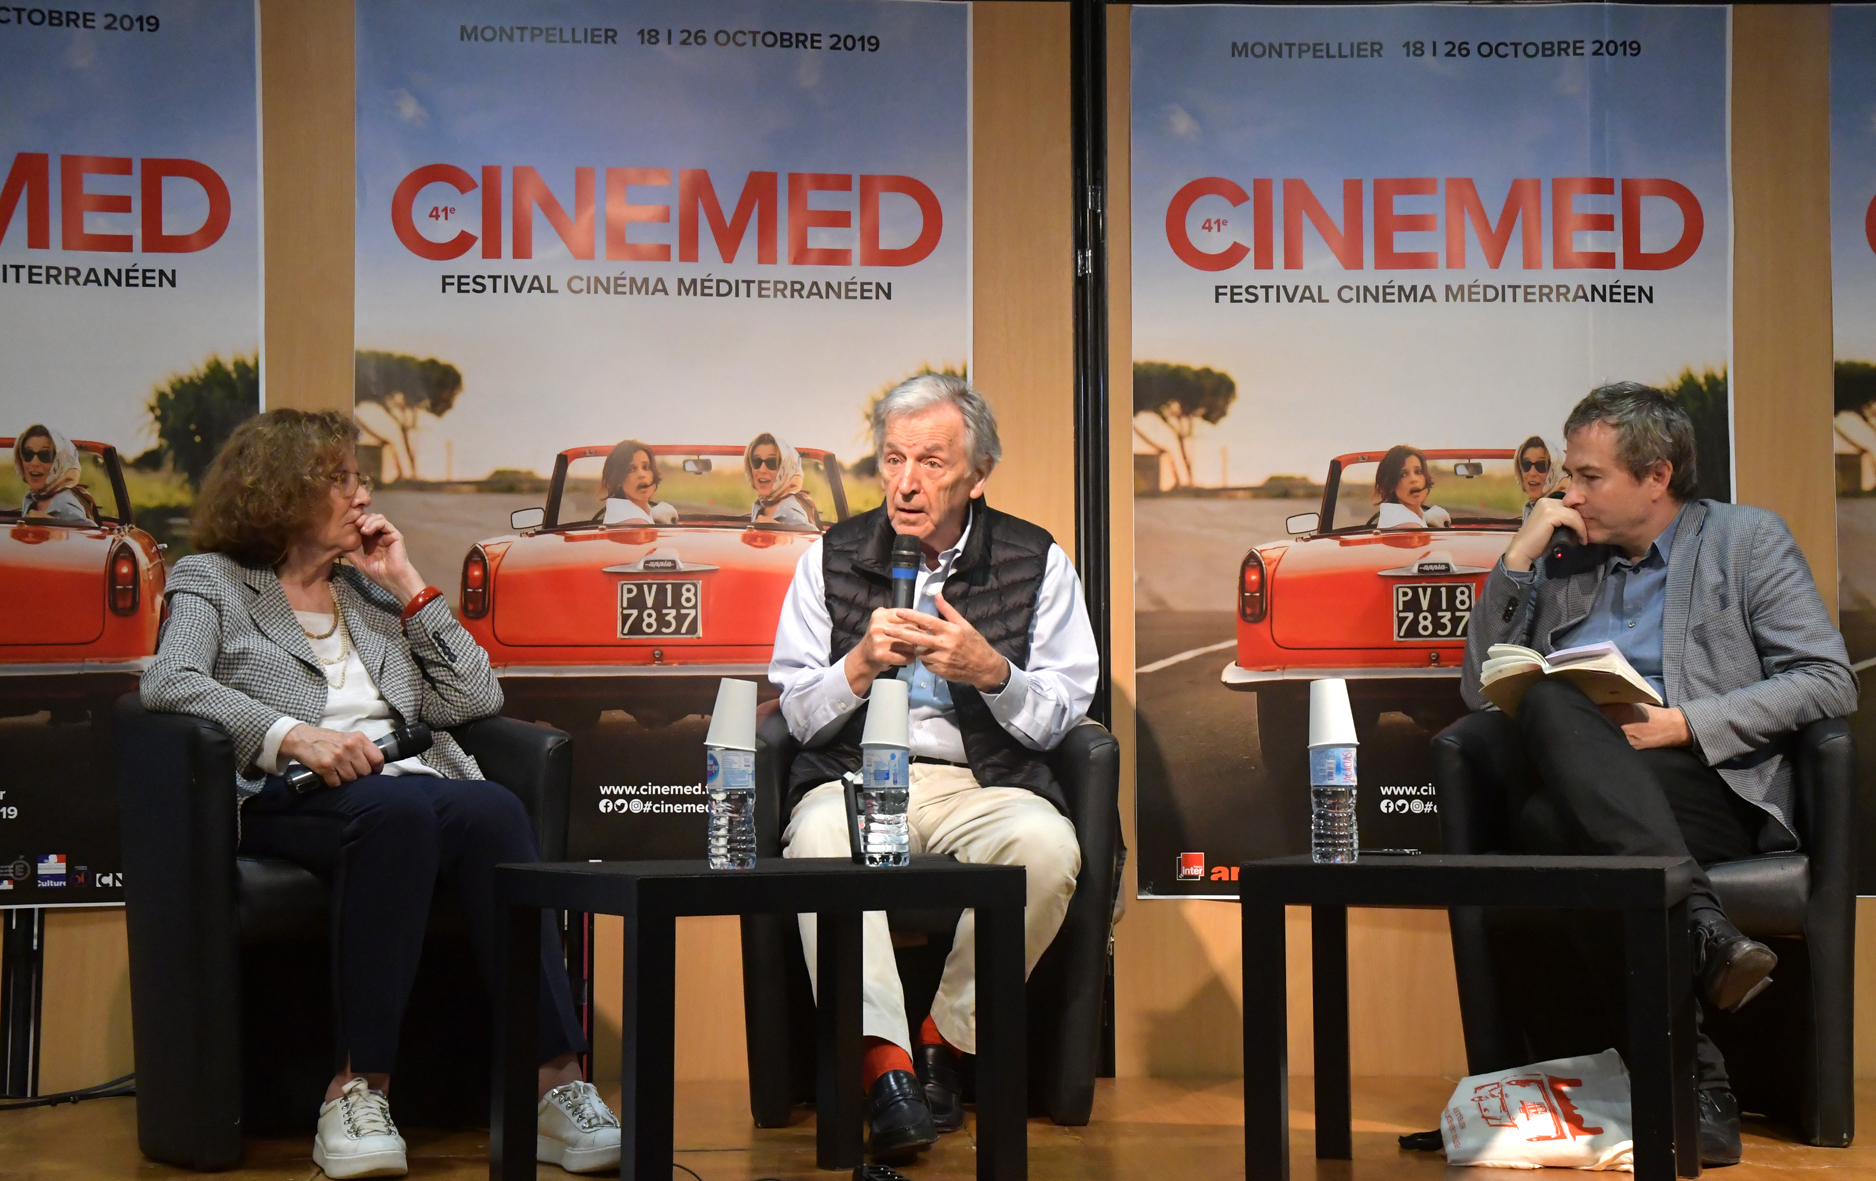 Costa-Gavras Adults in the Room Cinemed Montpellier